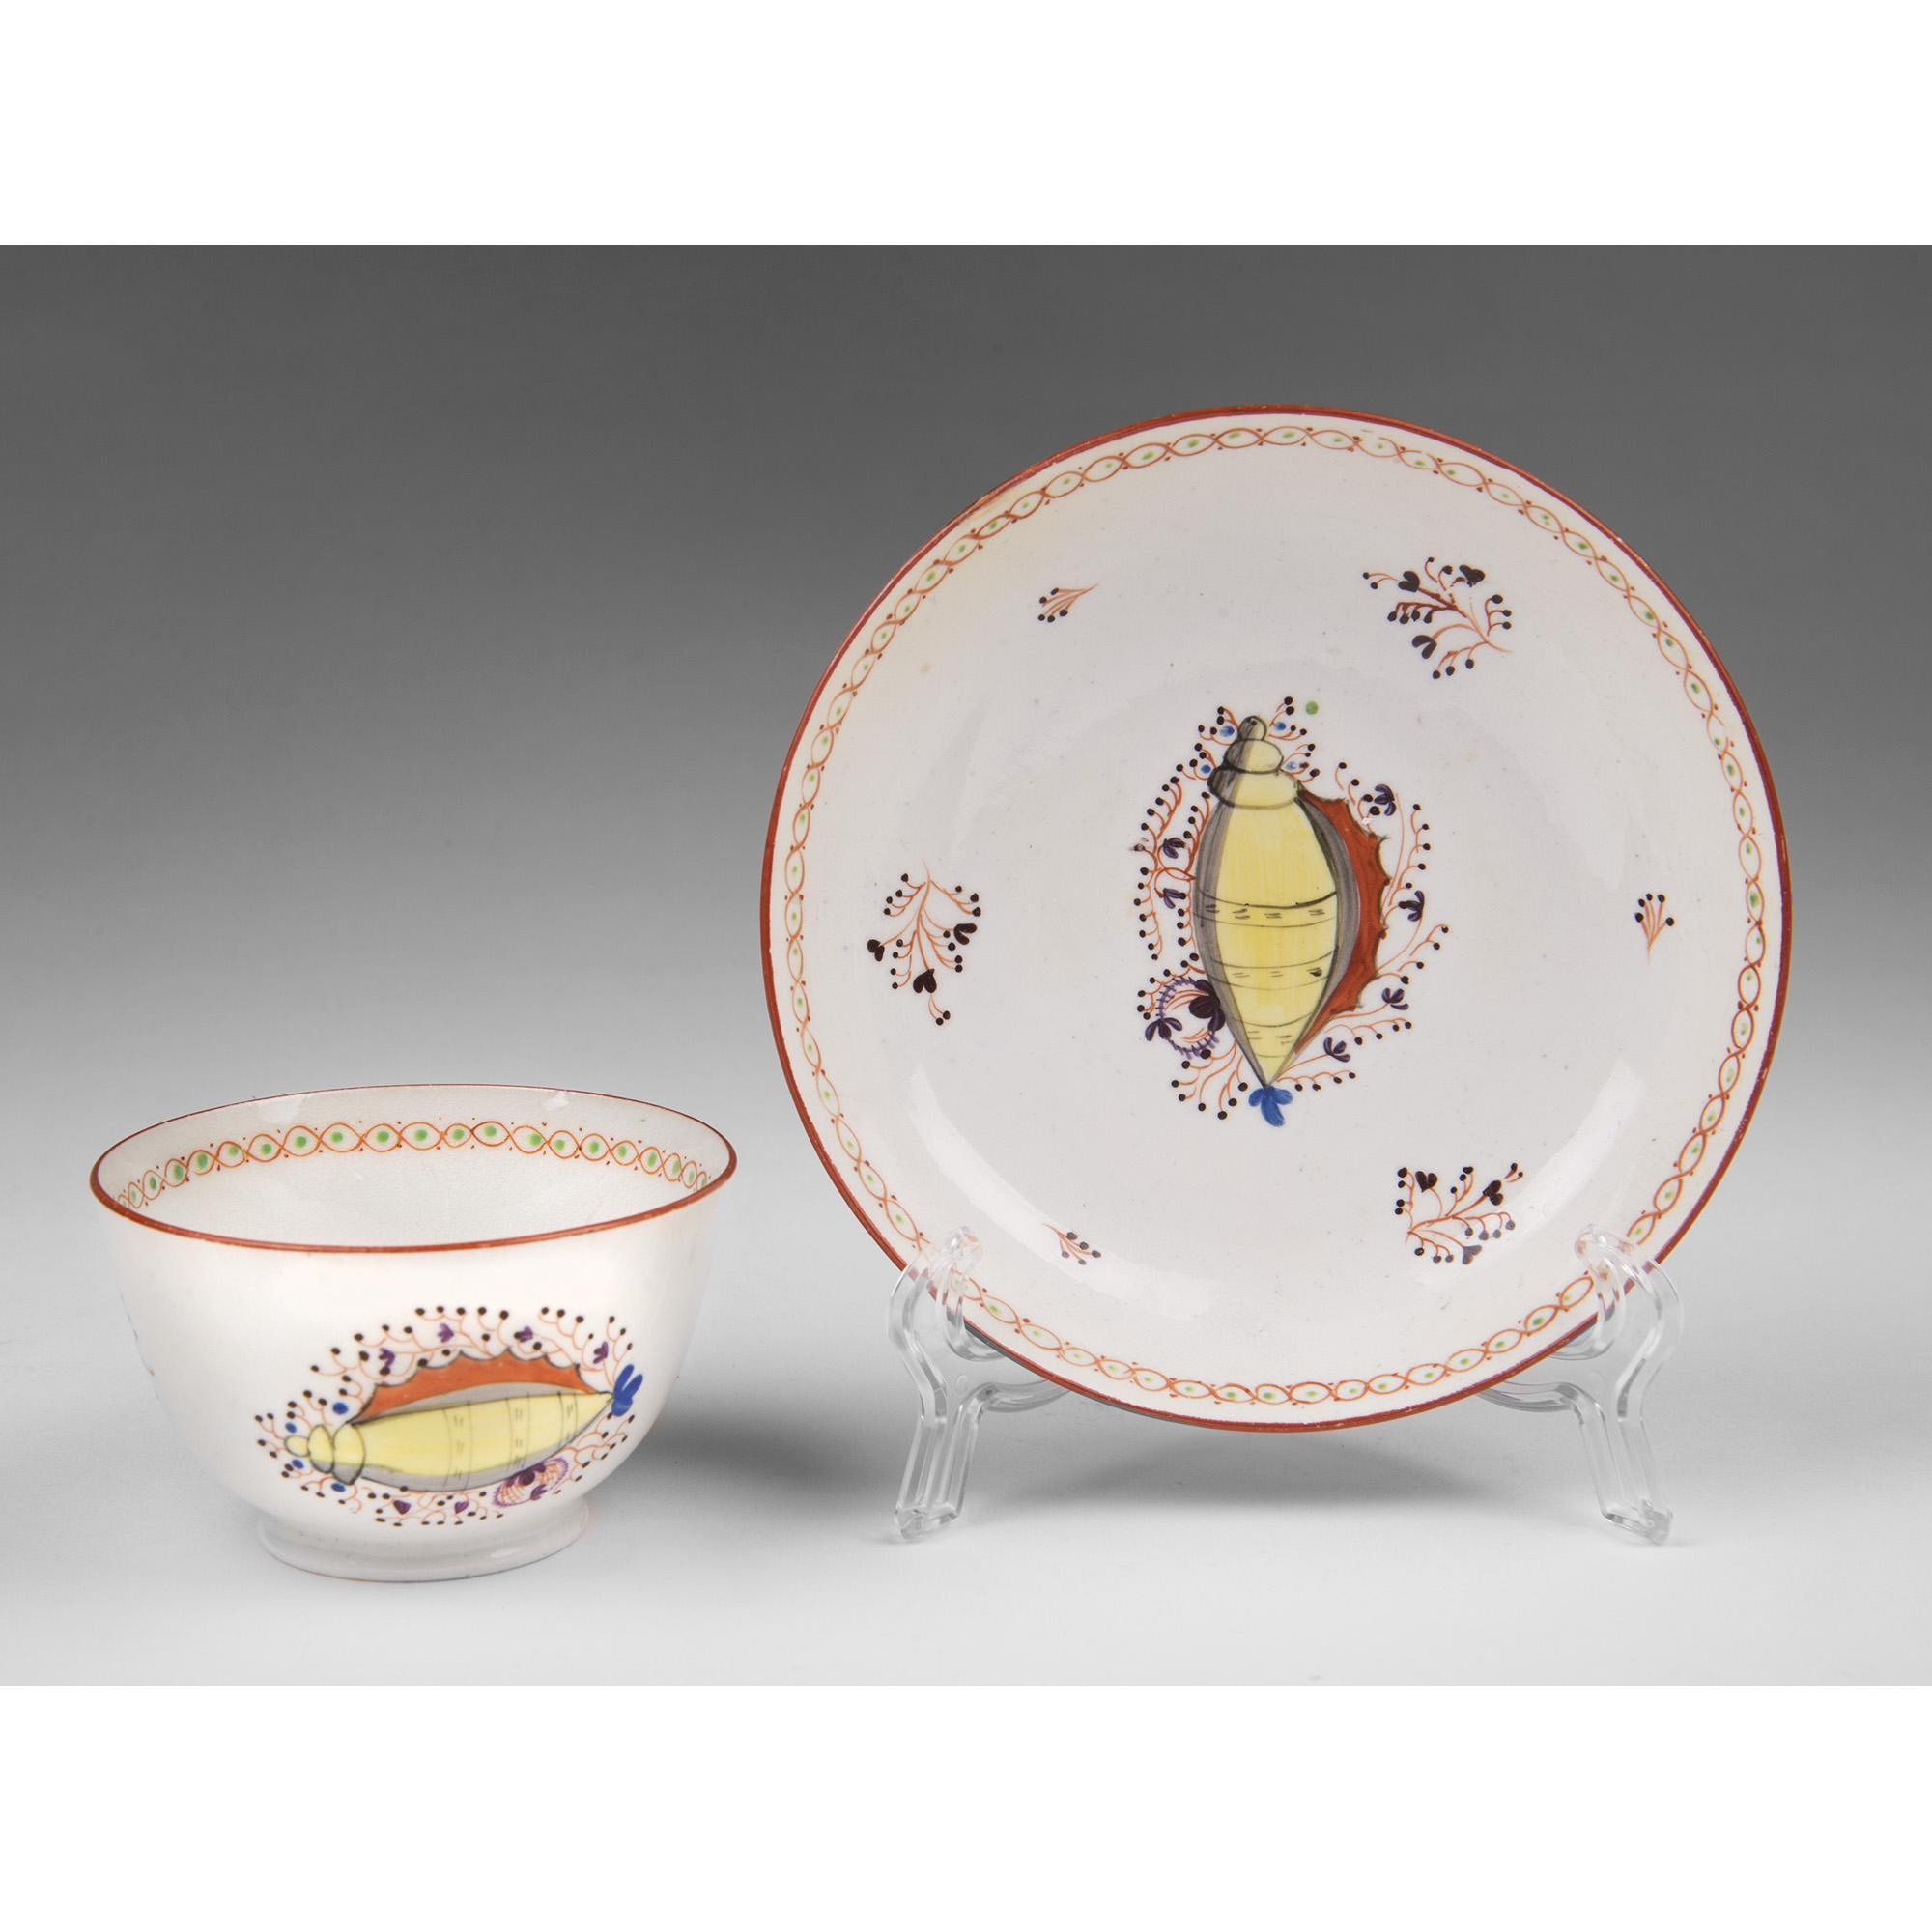 1800 Staffordshire Creamware Tea Bowl & Saucer With Shell Motif